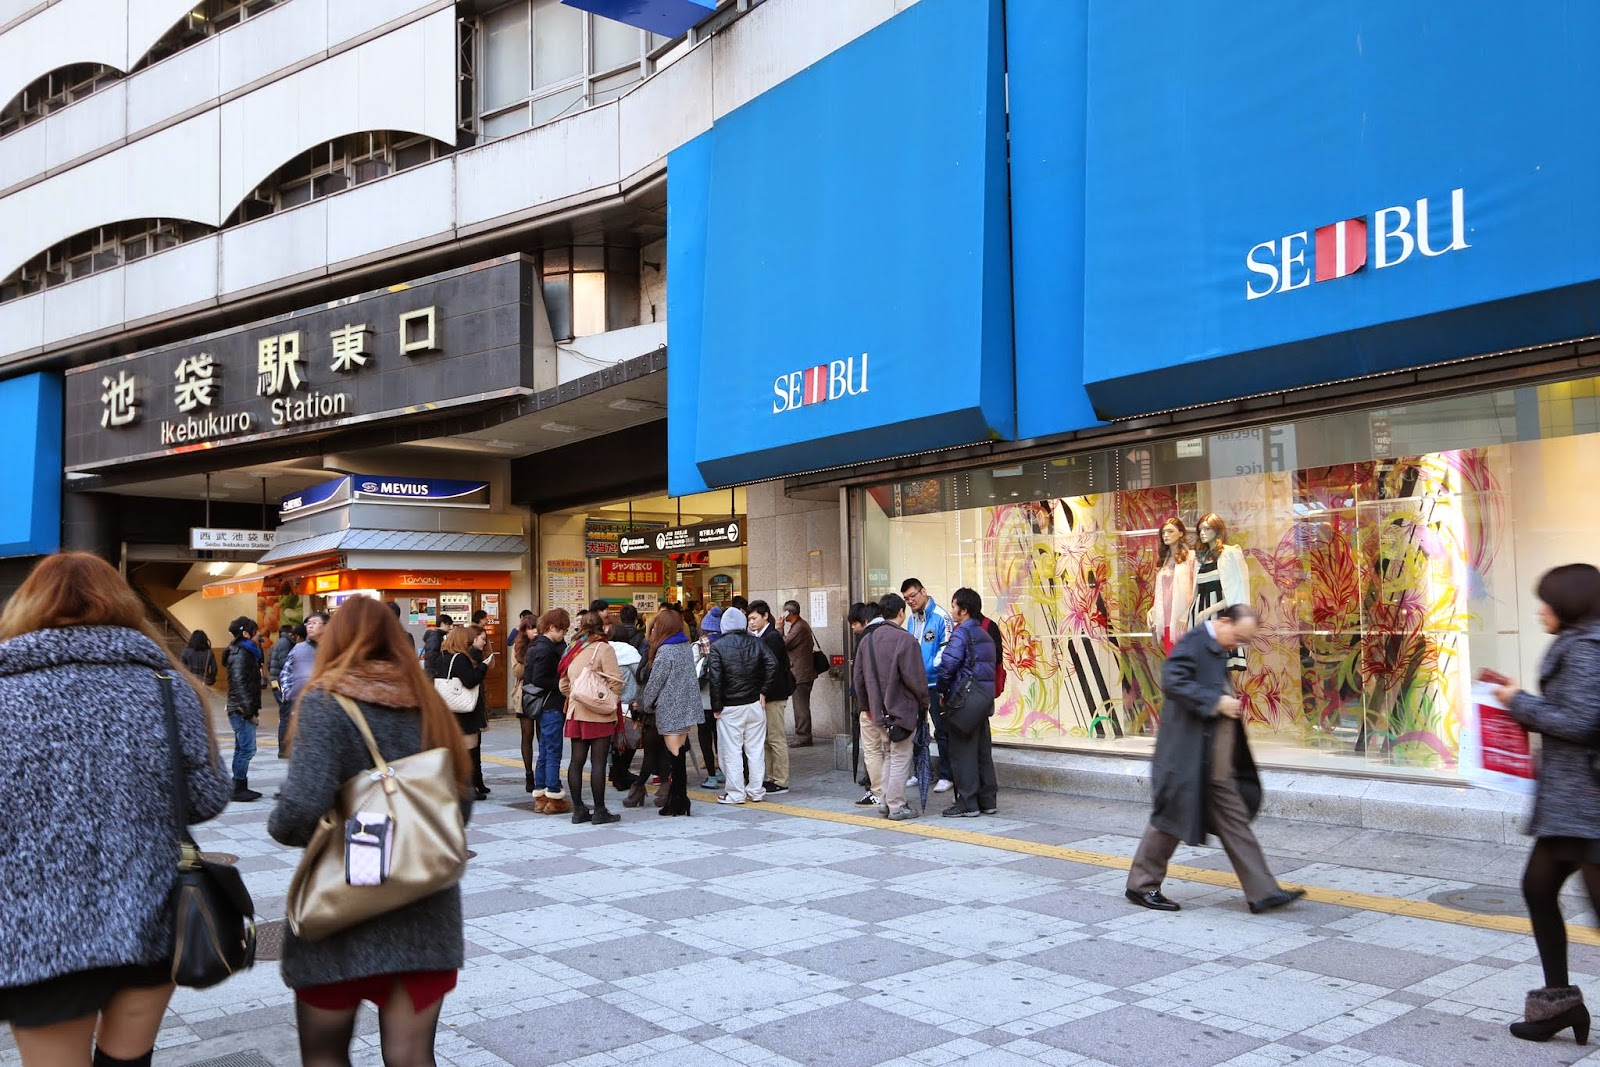 Ikebukuro station is situated next to Seibu Department Store in Tokyo, Japan